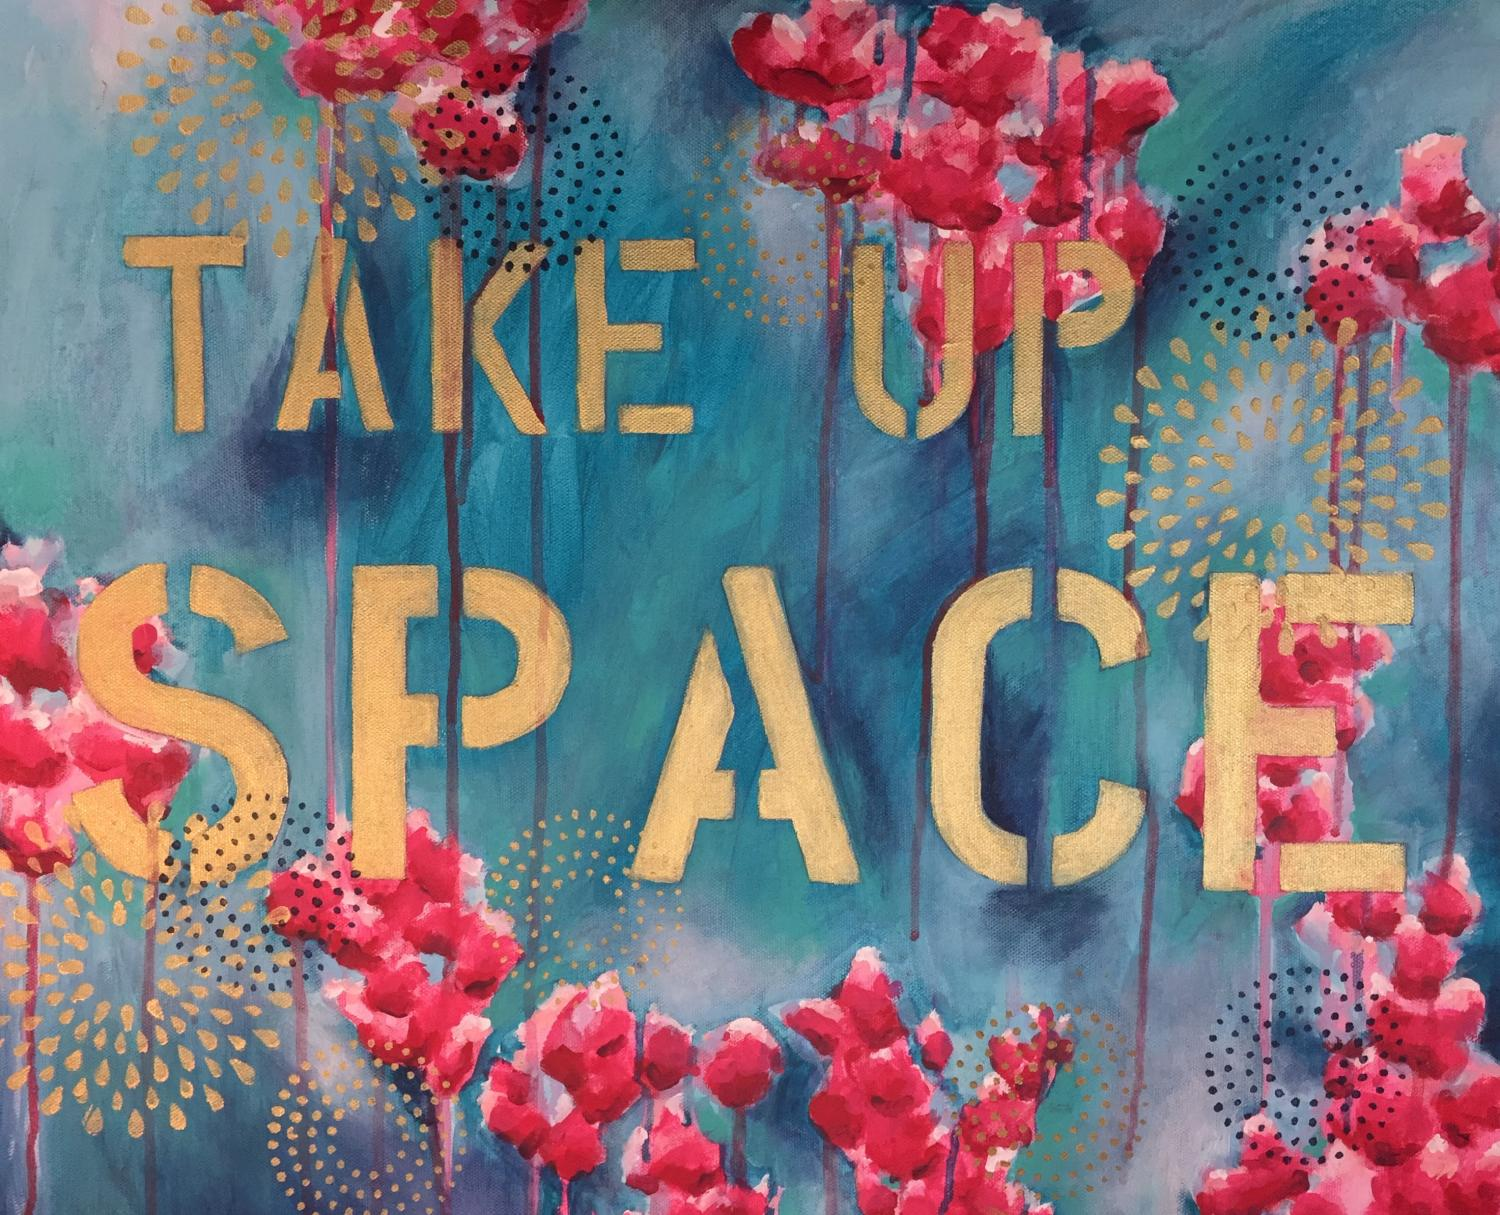 """painting with red and gold flowers over a background that is gradations of blue. Stenciled in large letters is """"TAKE UP SPACE"""", paint drips in places from the flowers like tears running down the painting"""